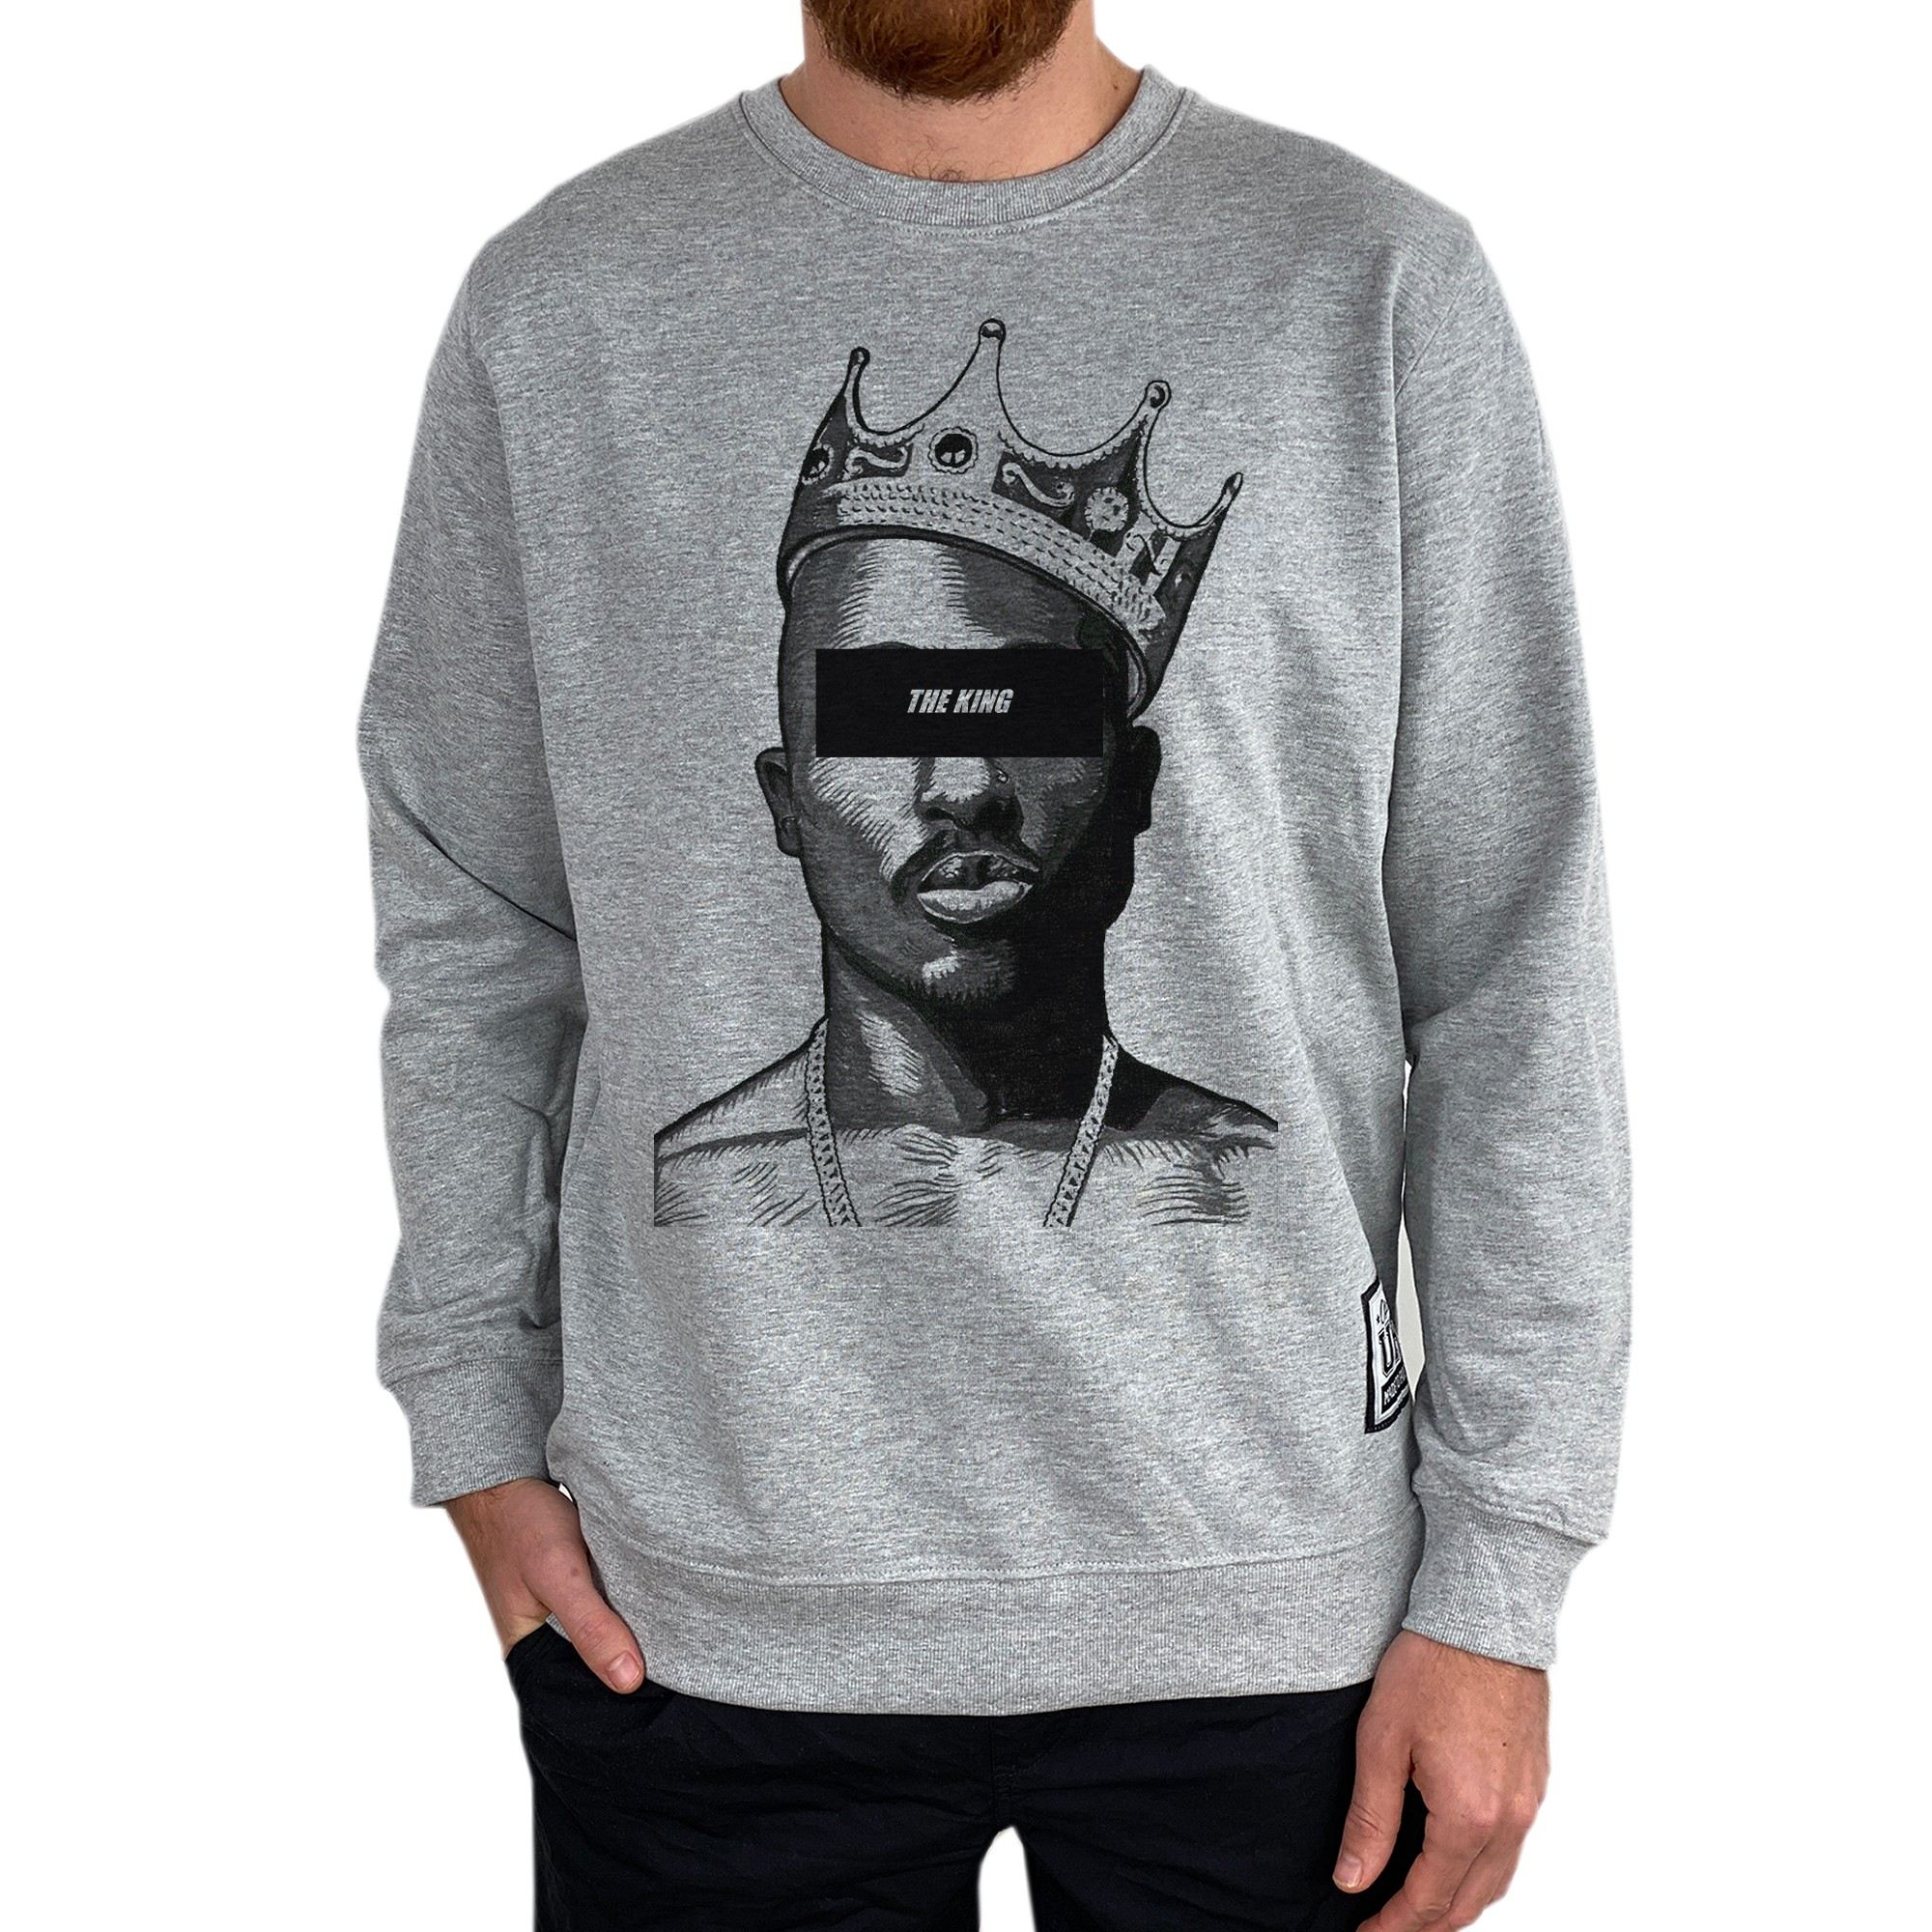 THE KING MARBLE GREY CREW